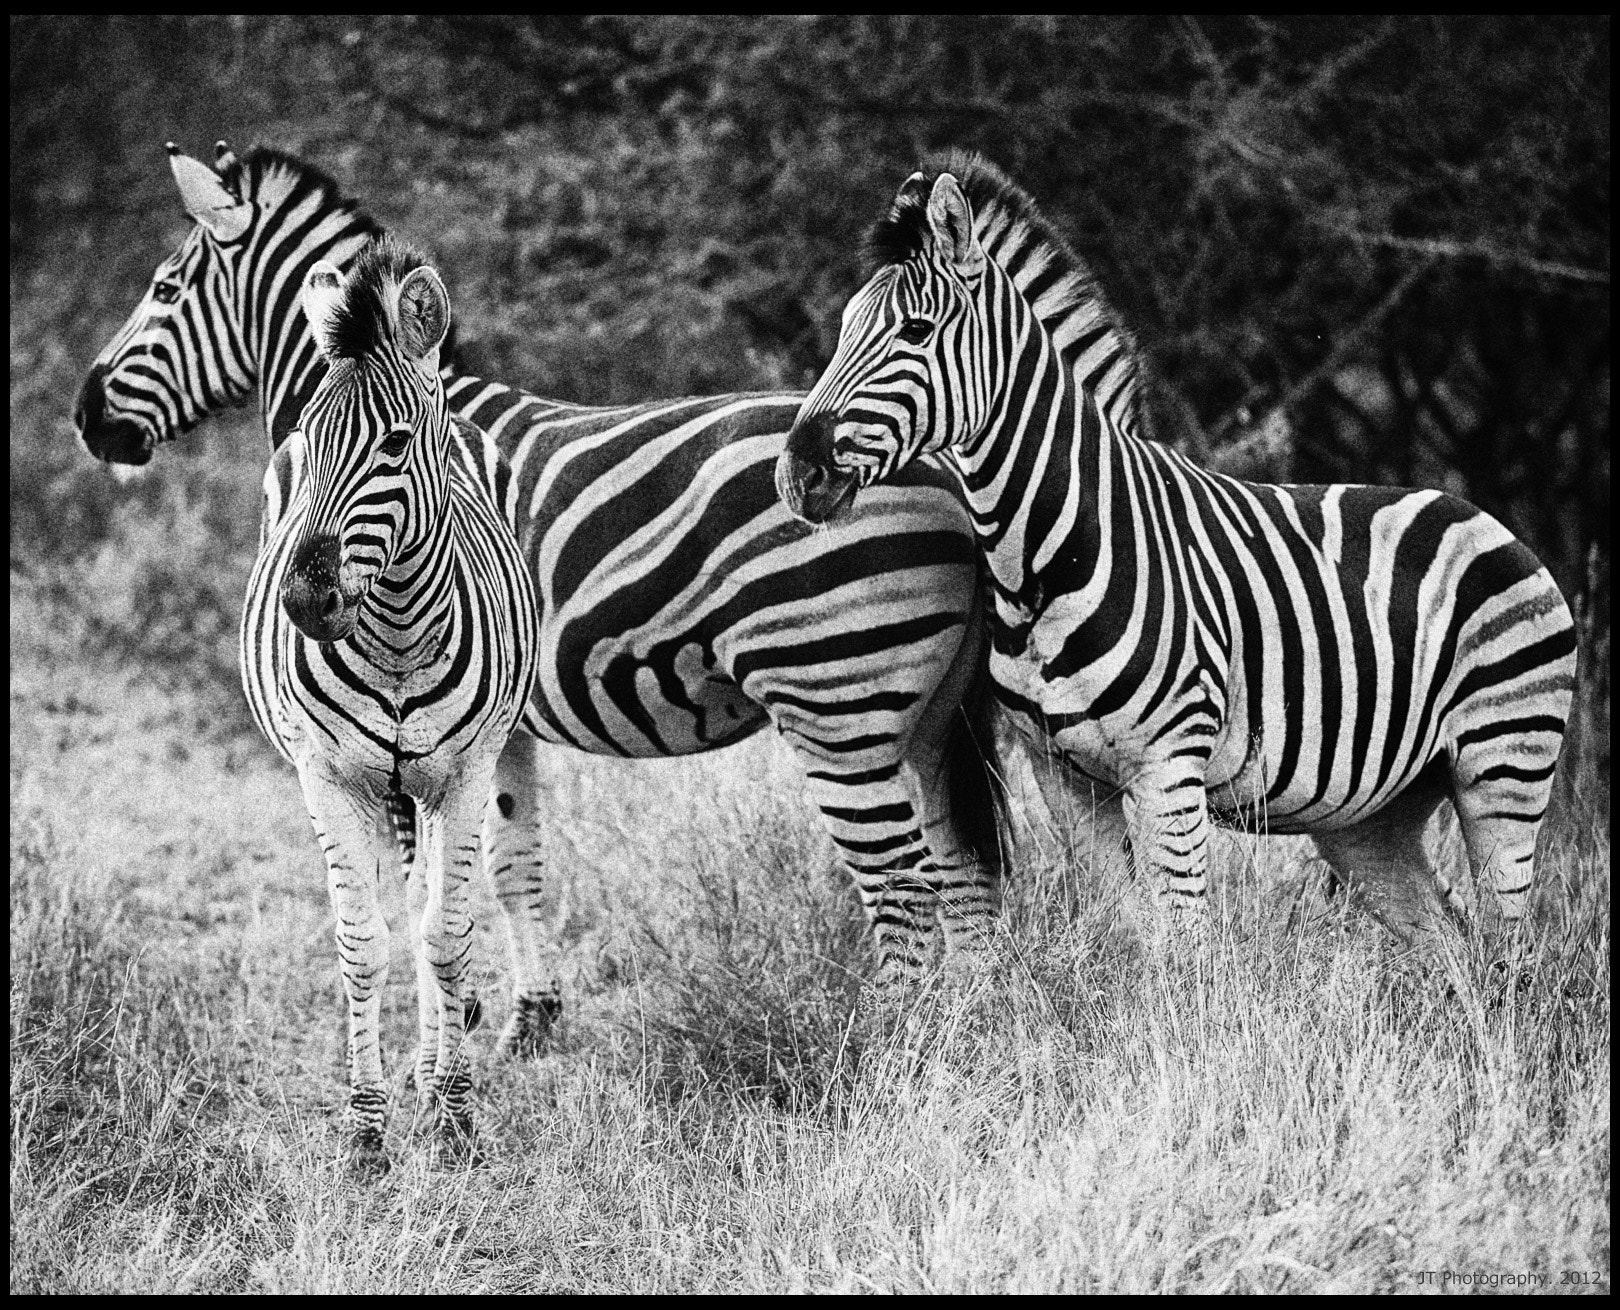 Photograph Black and White by Jason Tiong on 500px